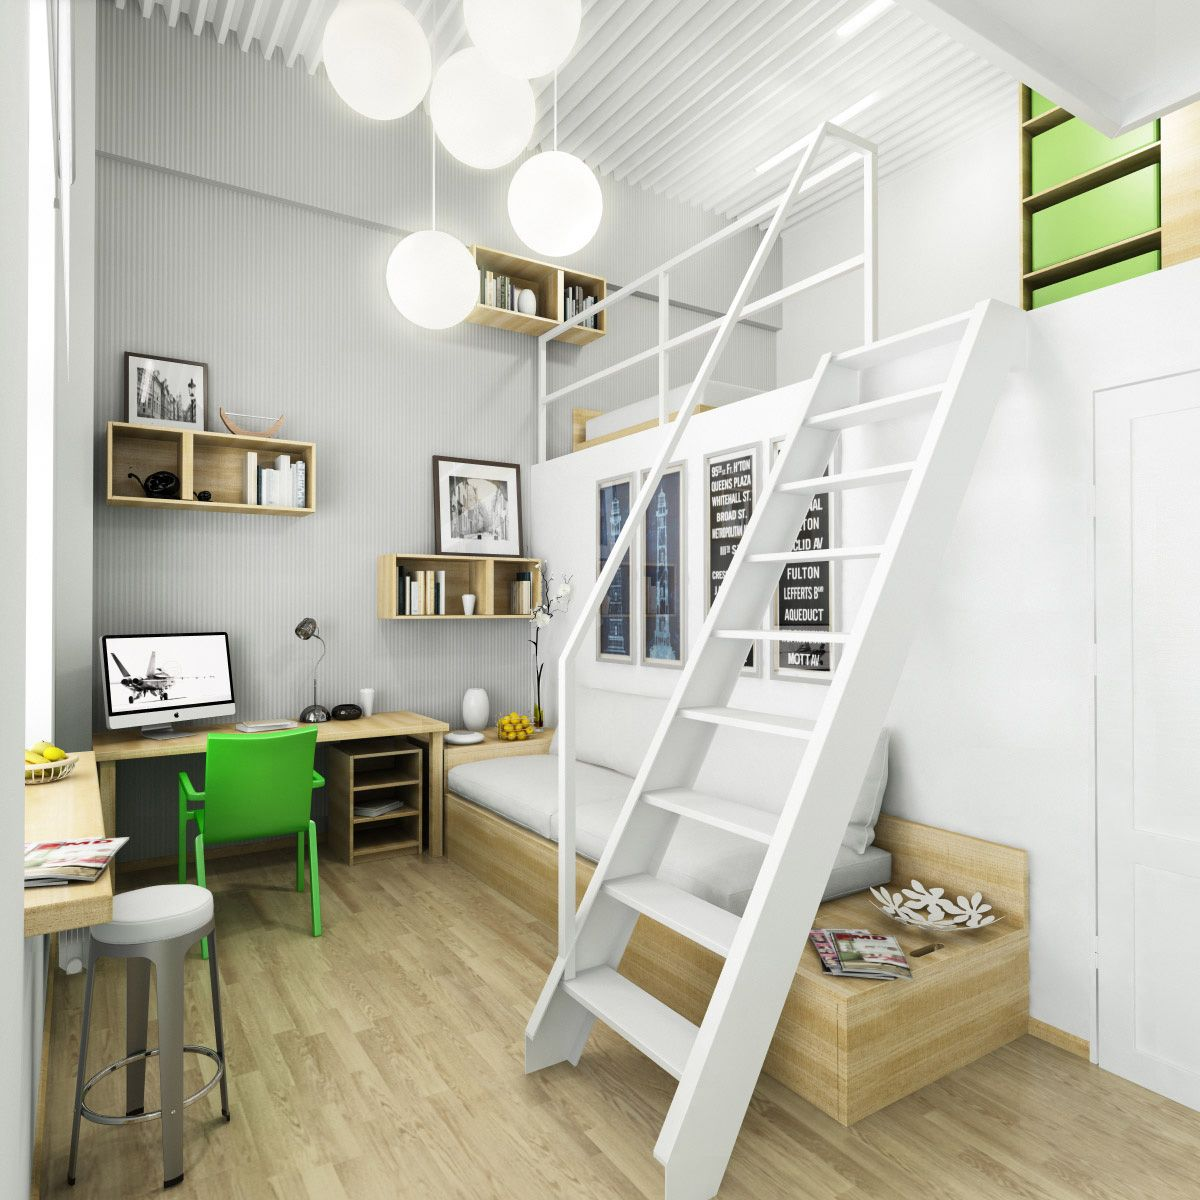 Teenage loft bedroom designs  A mezzanine level allows more space for study in this shared room